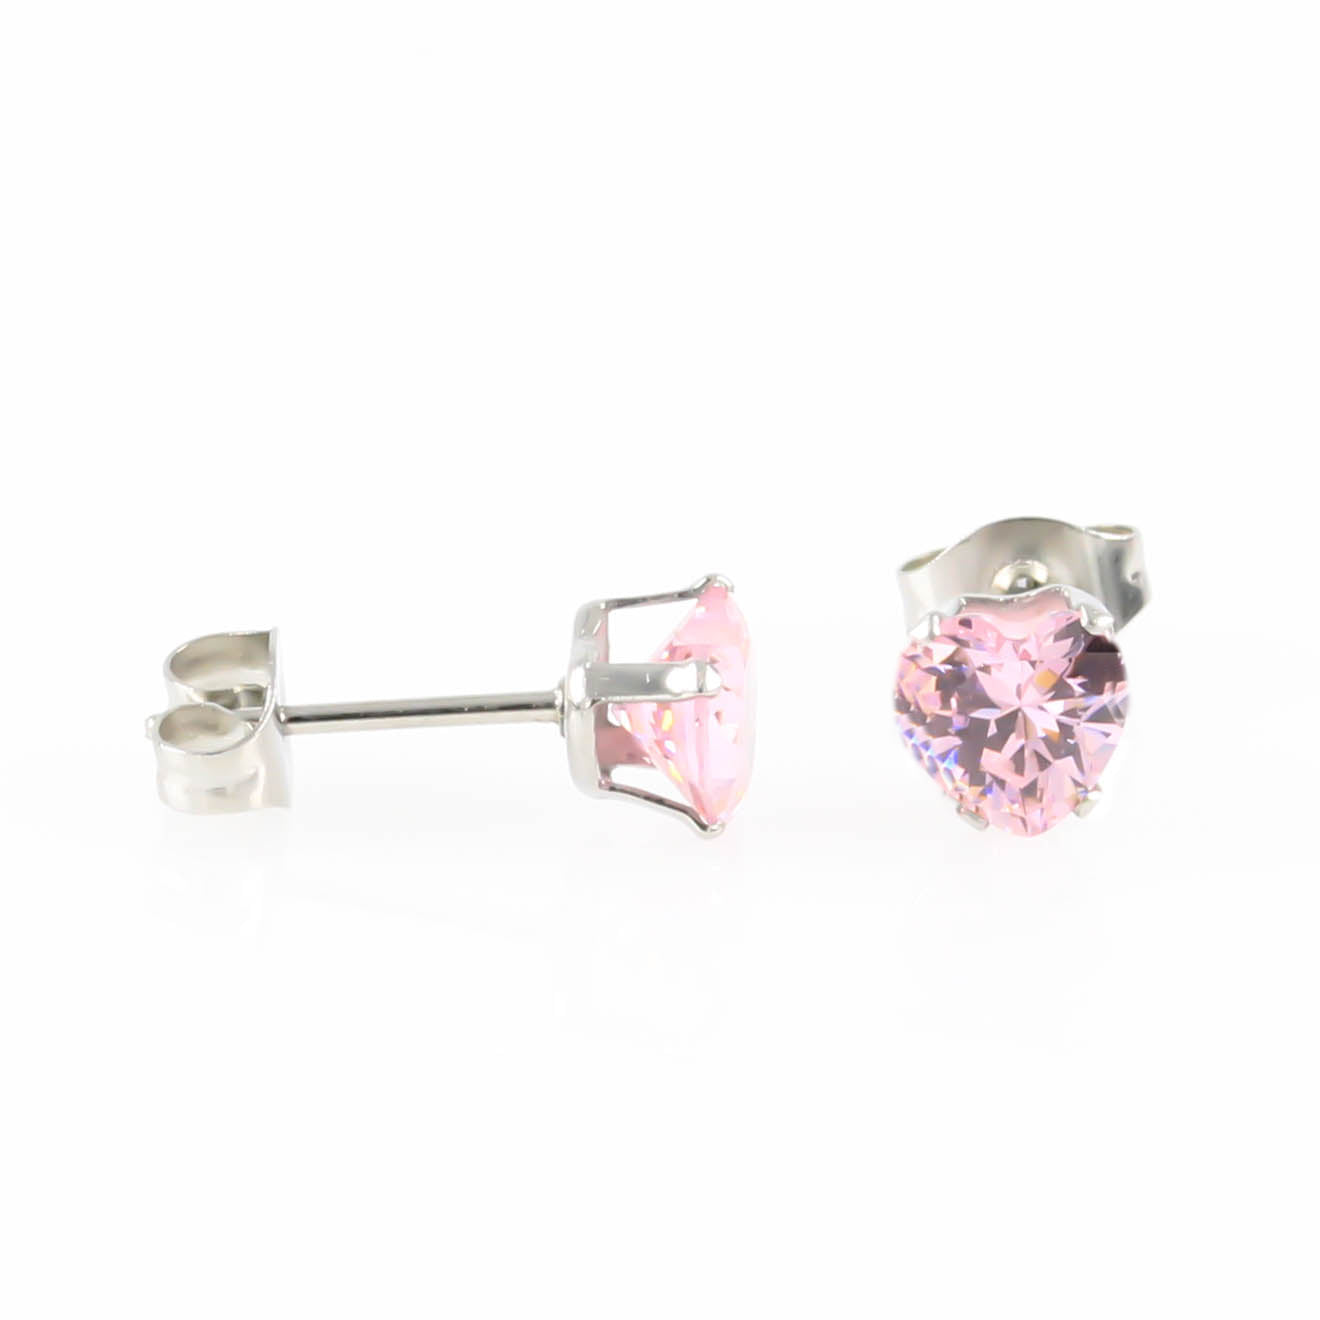 Pink Love Heart Cubic Zirconia Hypoallergenic Earrings